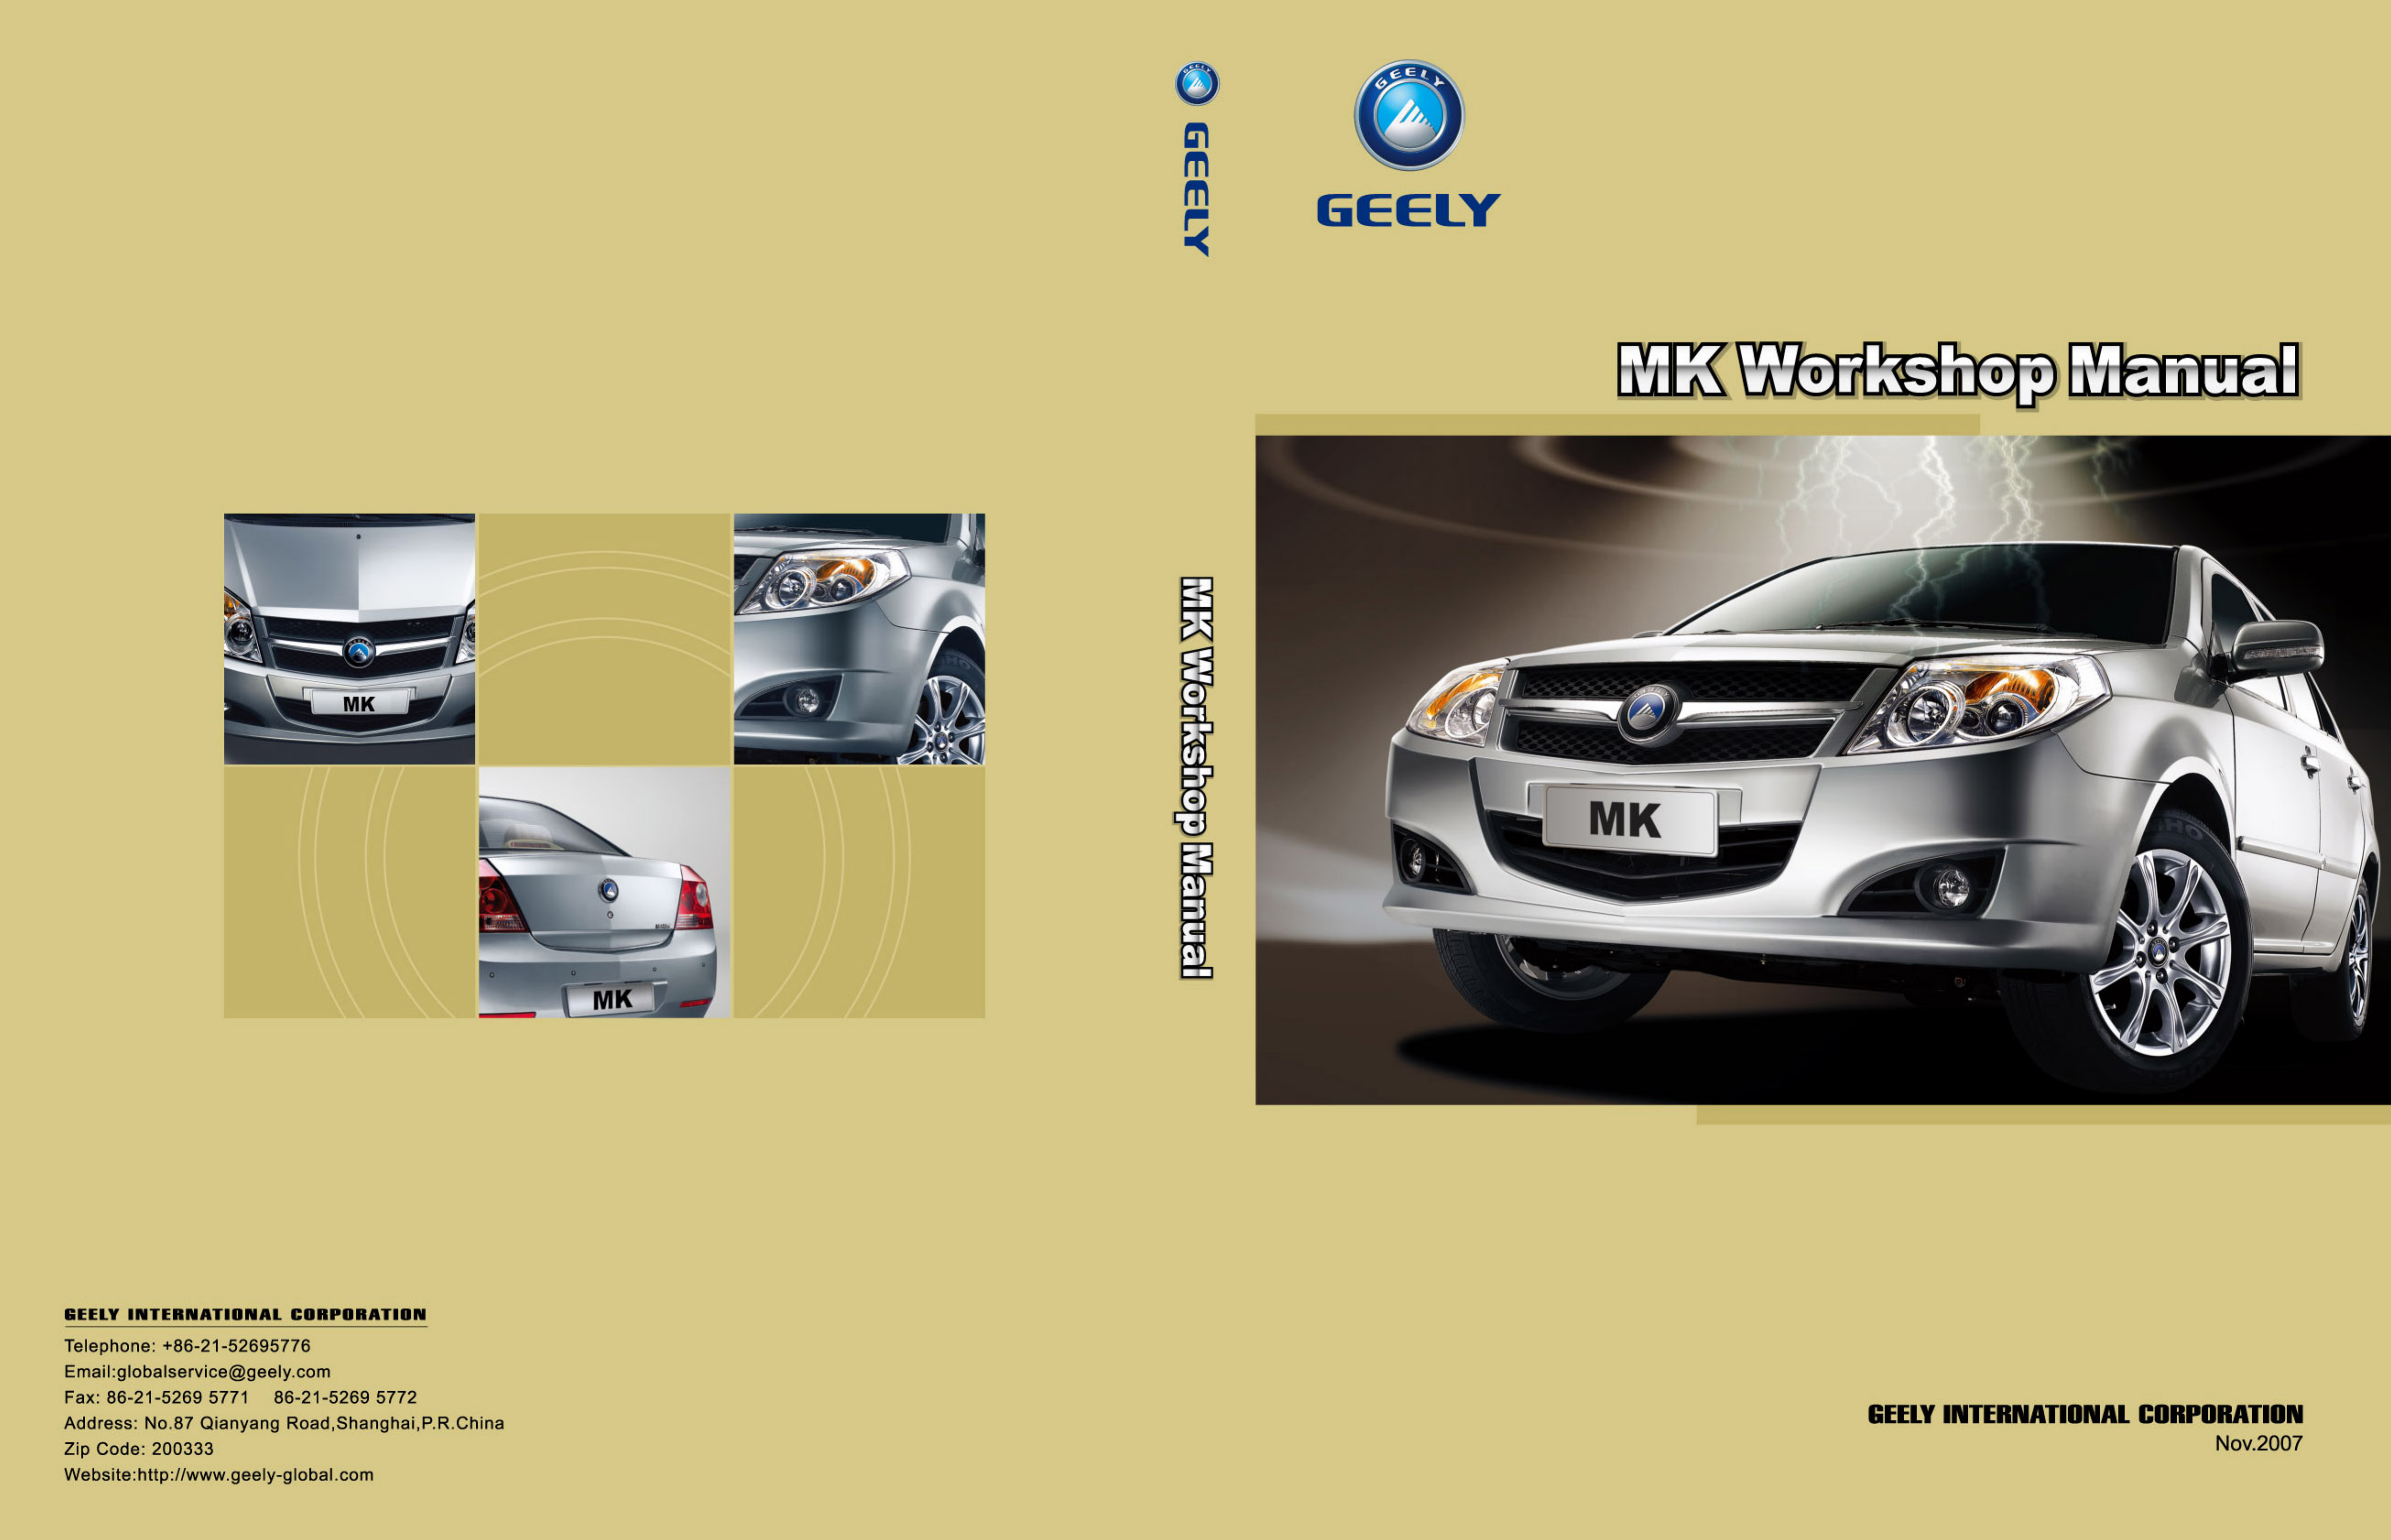 See our other Geely MK Manuals: